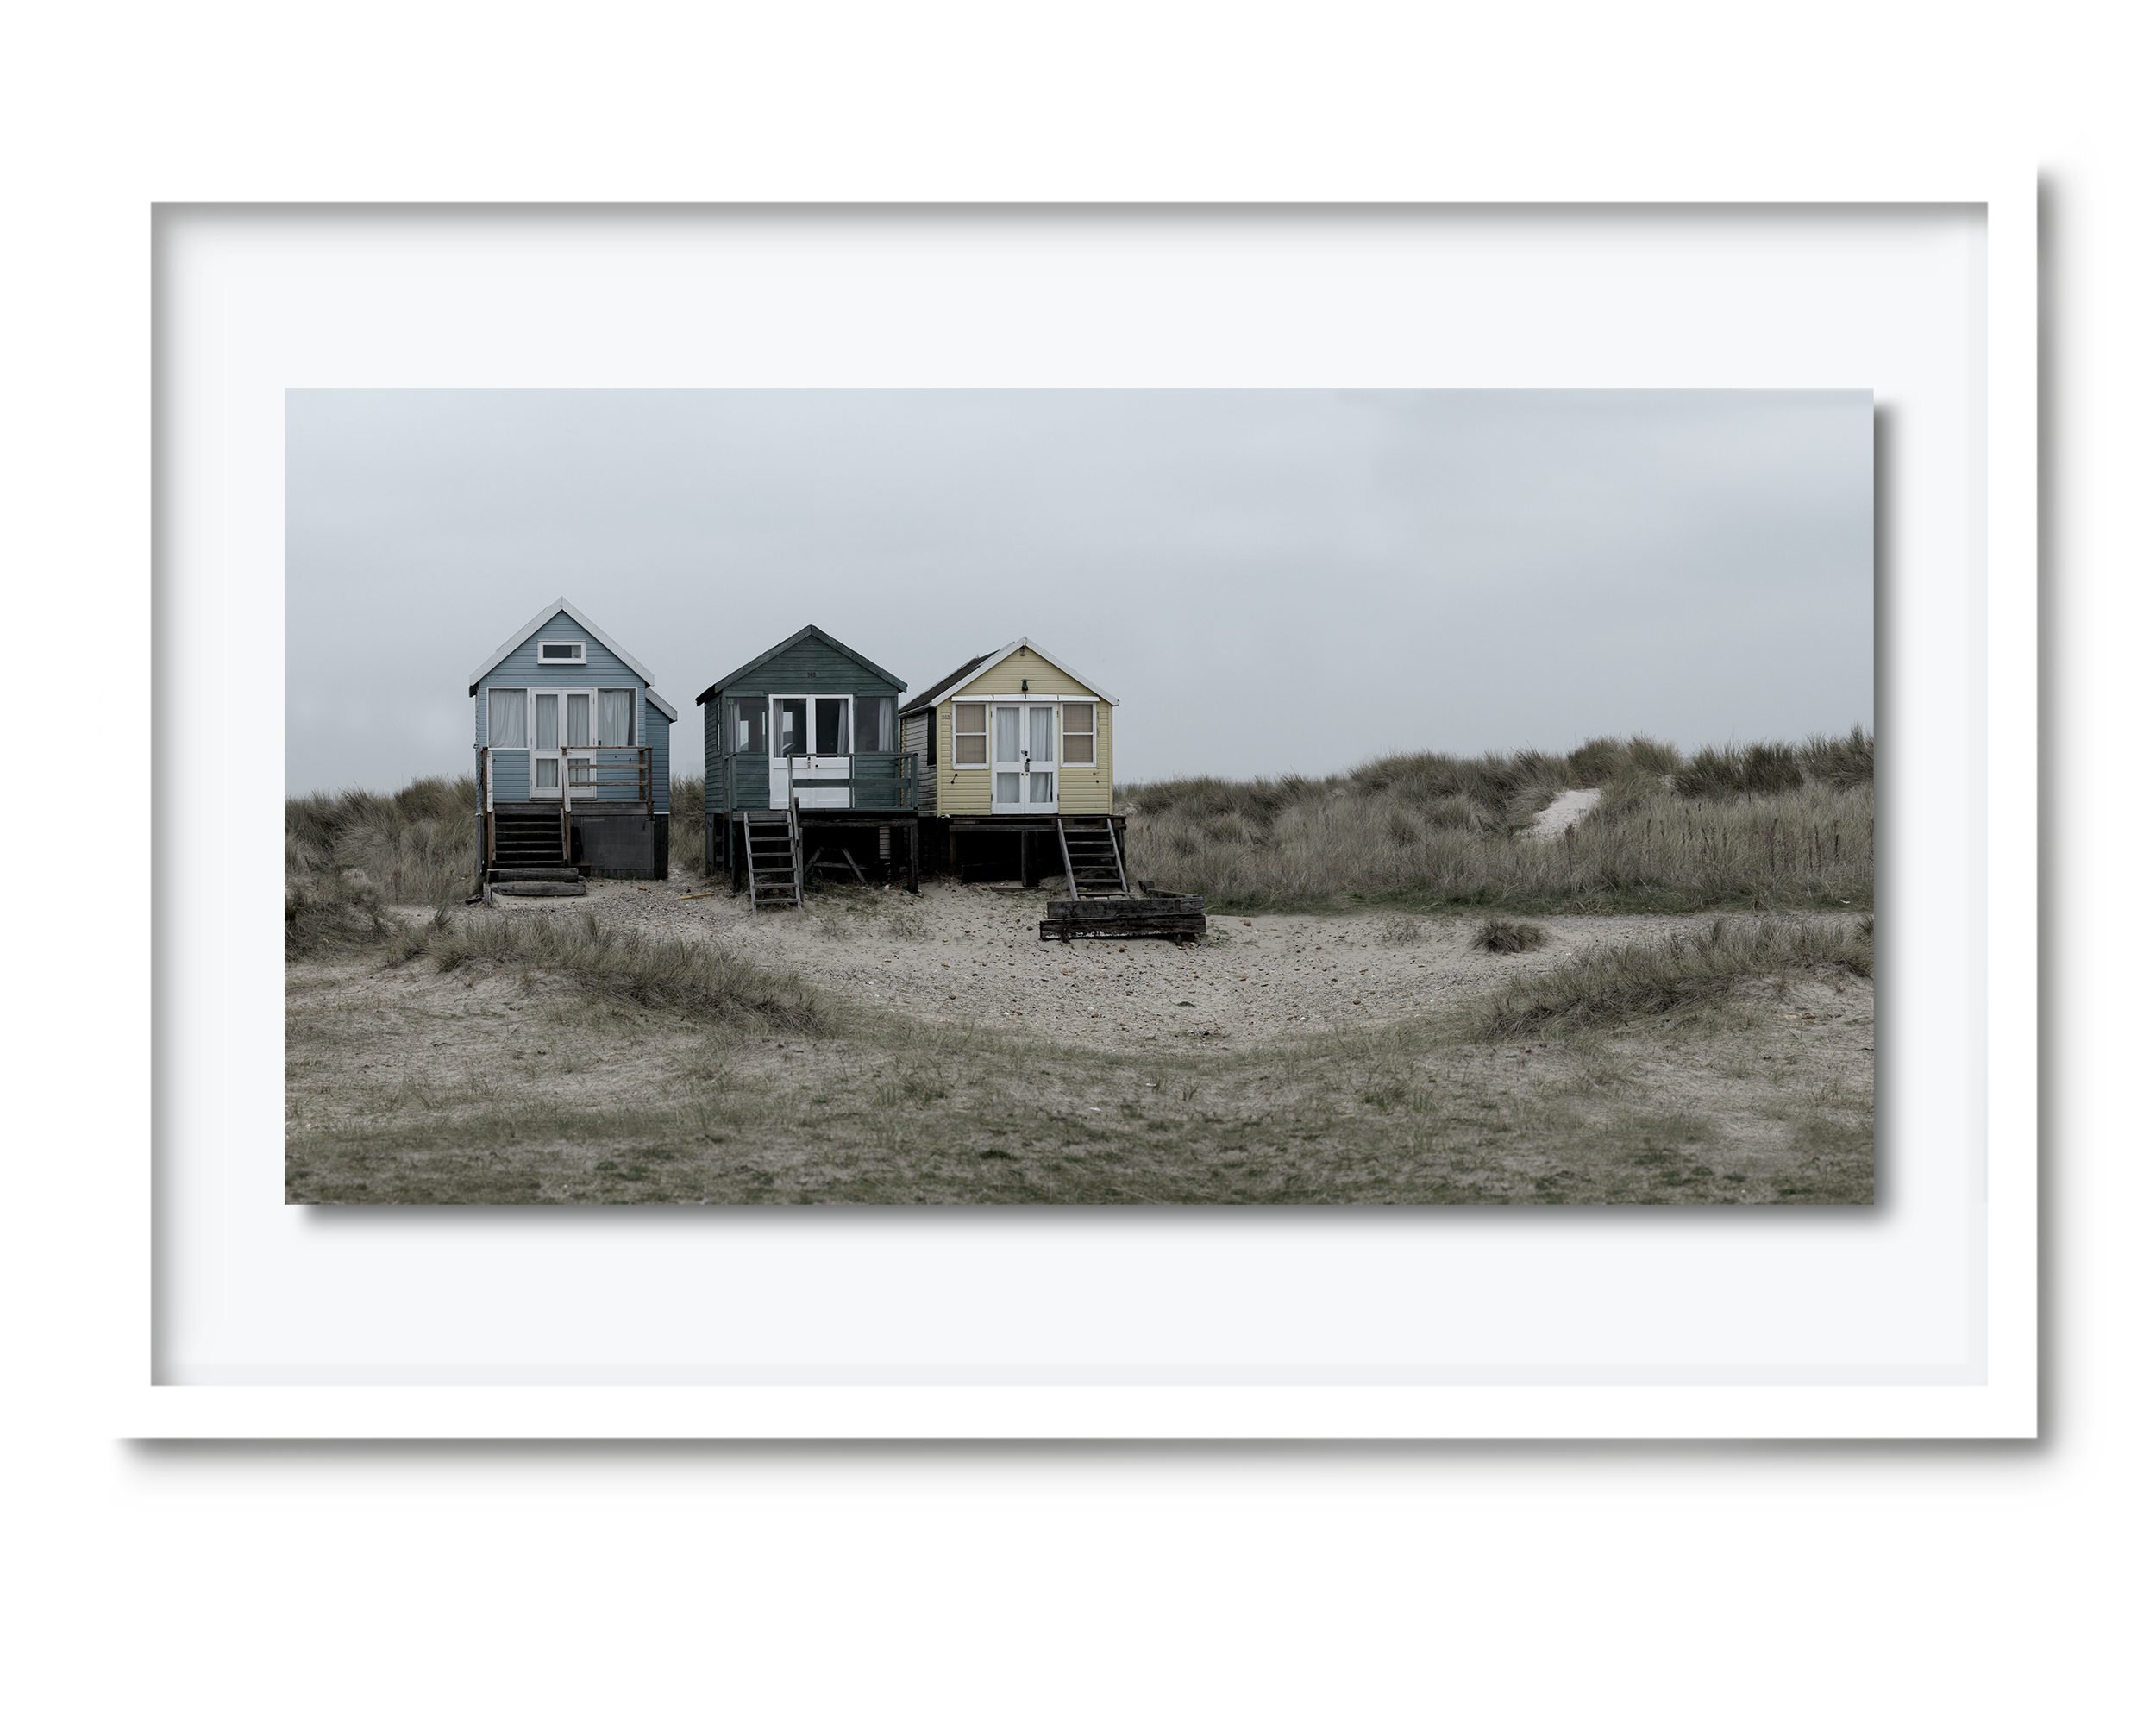 28.david-pearce-beachhuts.png